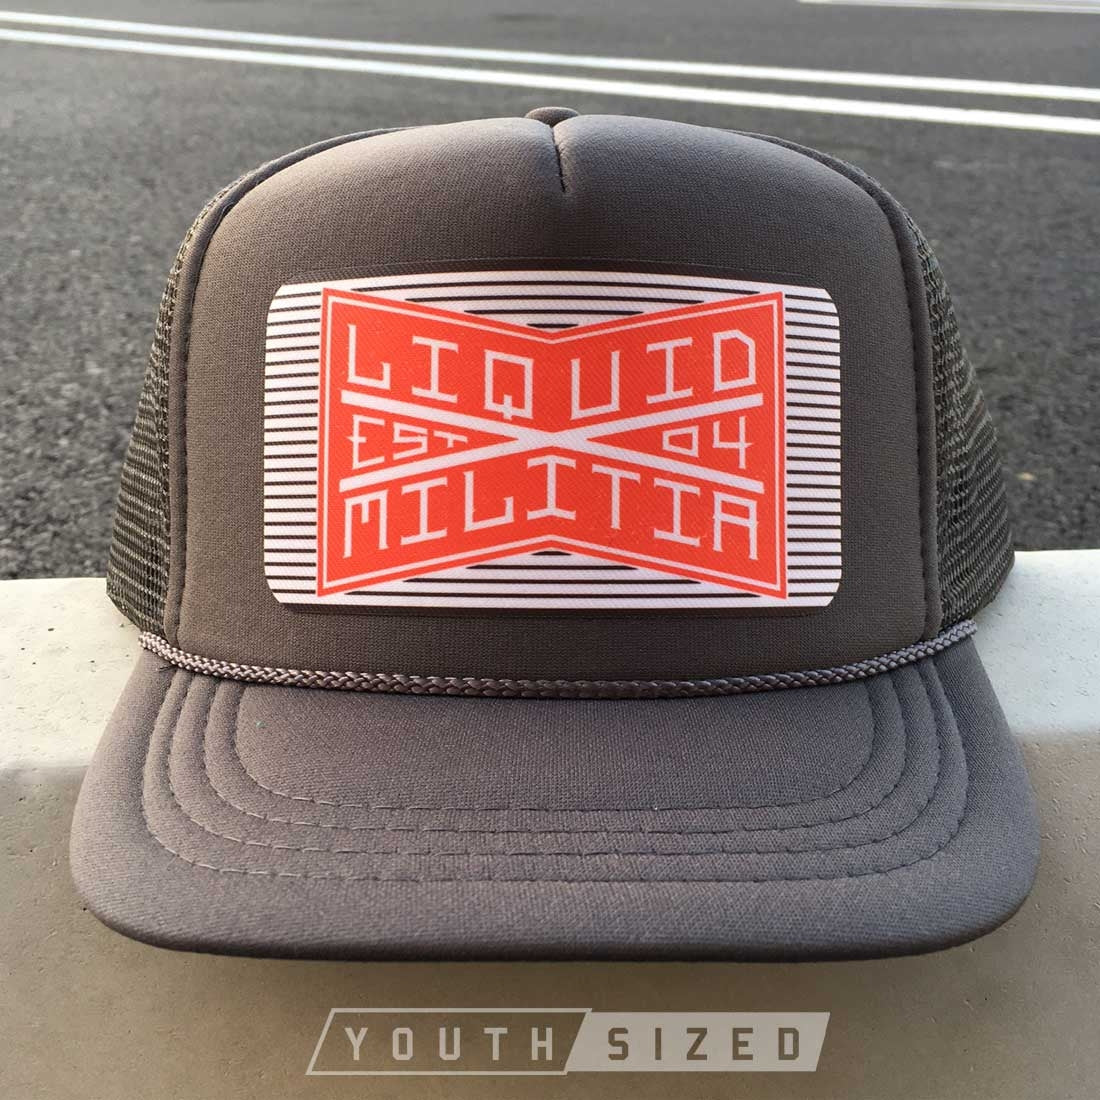 Liquid Militia Bind Youth Hat in Charcoal Gray